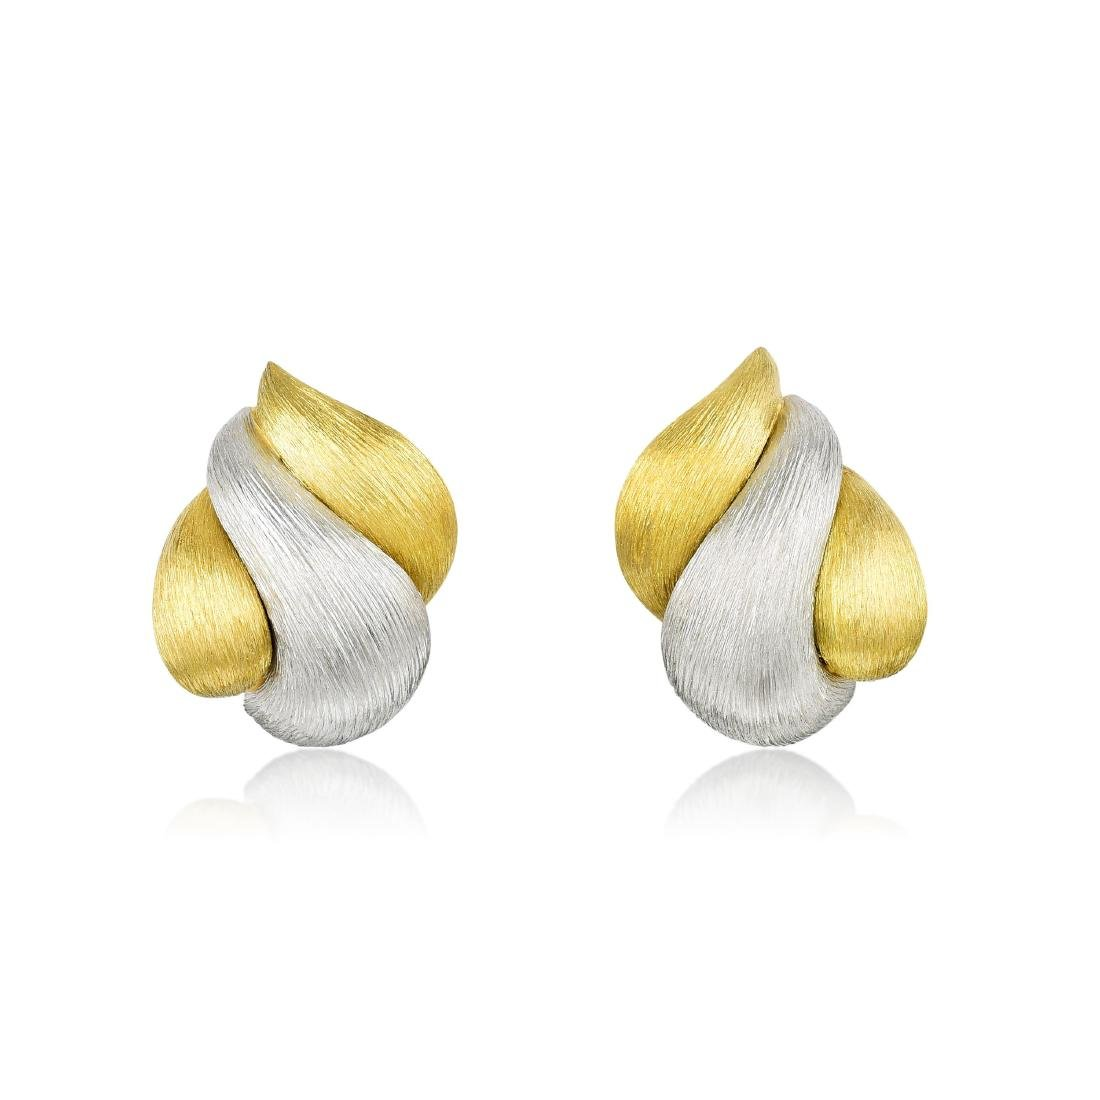 Henry Dunay Pin and Earring Set - 2